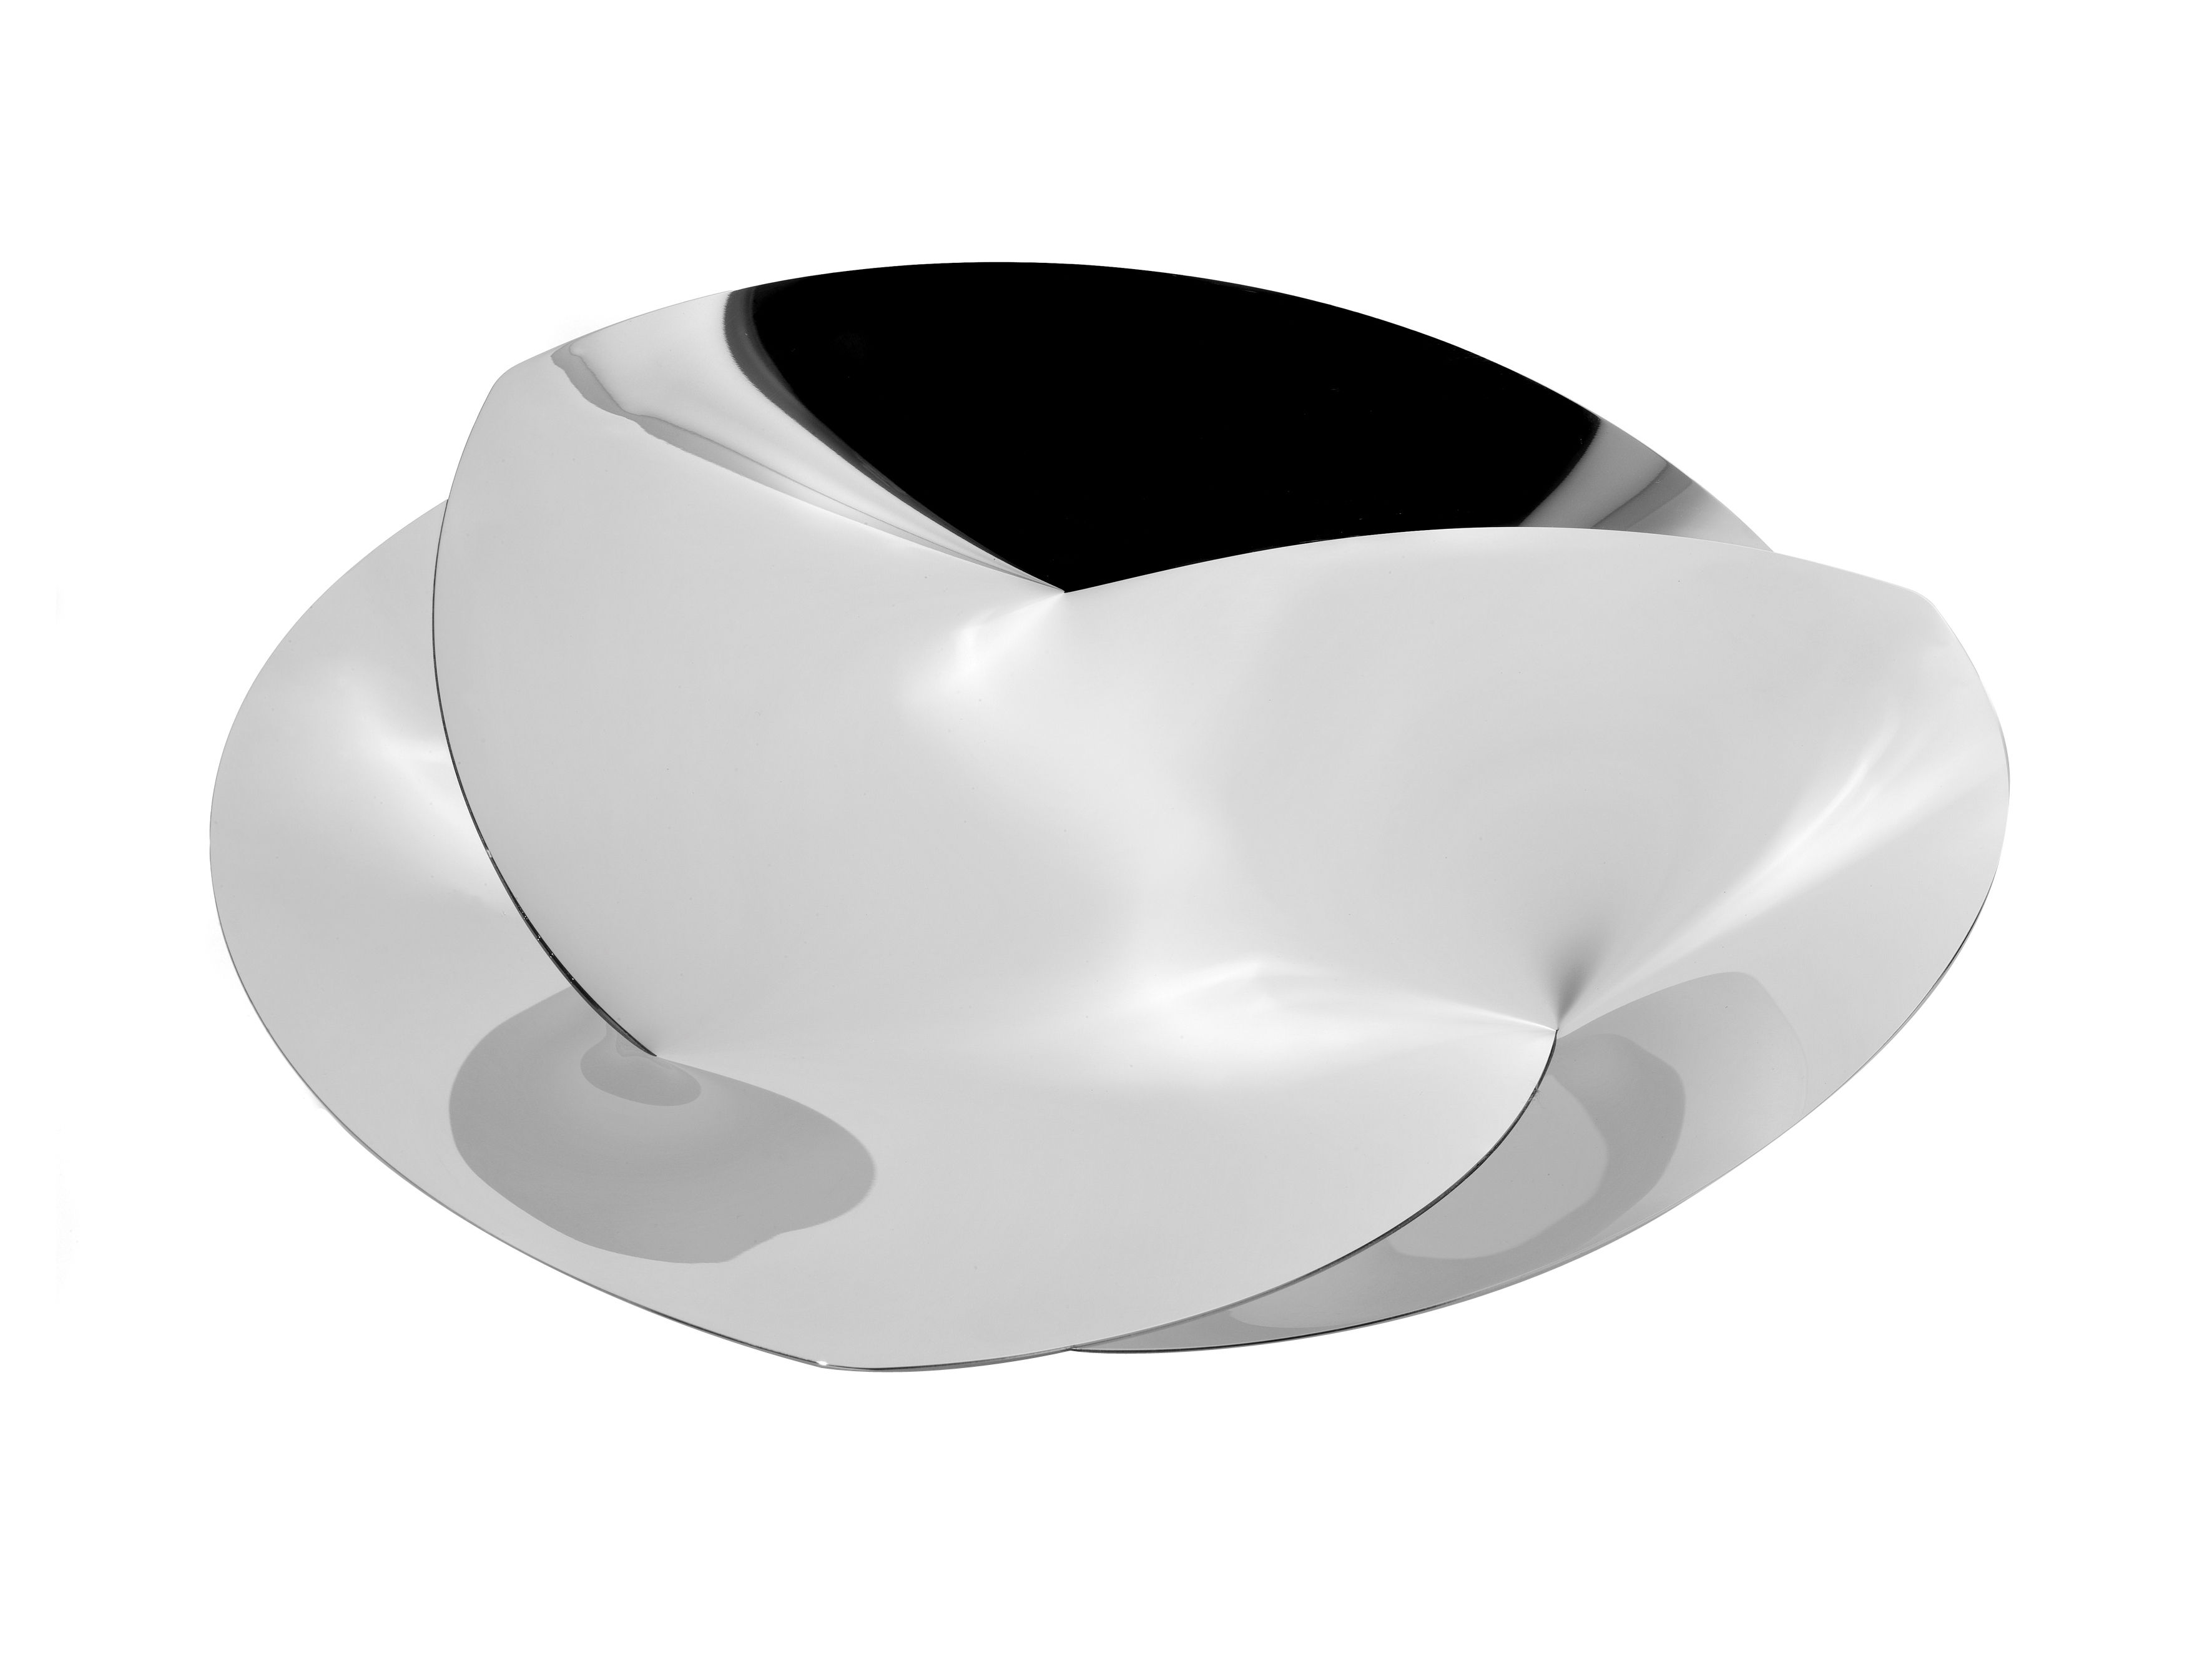 Tableware - Fruit Bowls & Centrepieces - Resonance Basket - Ø 40 cm by Alessi - Mirror polished - Stainless steel